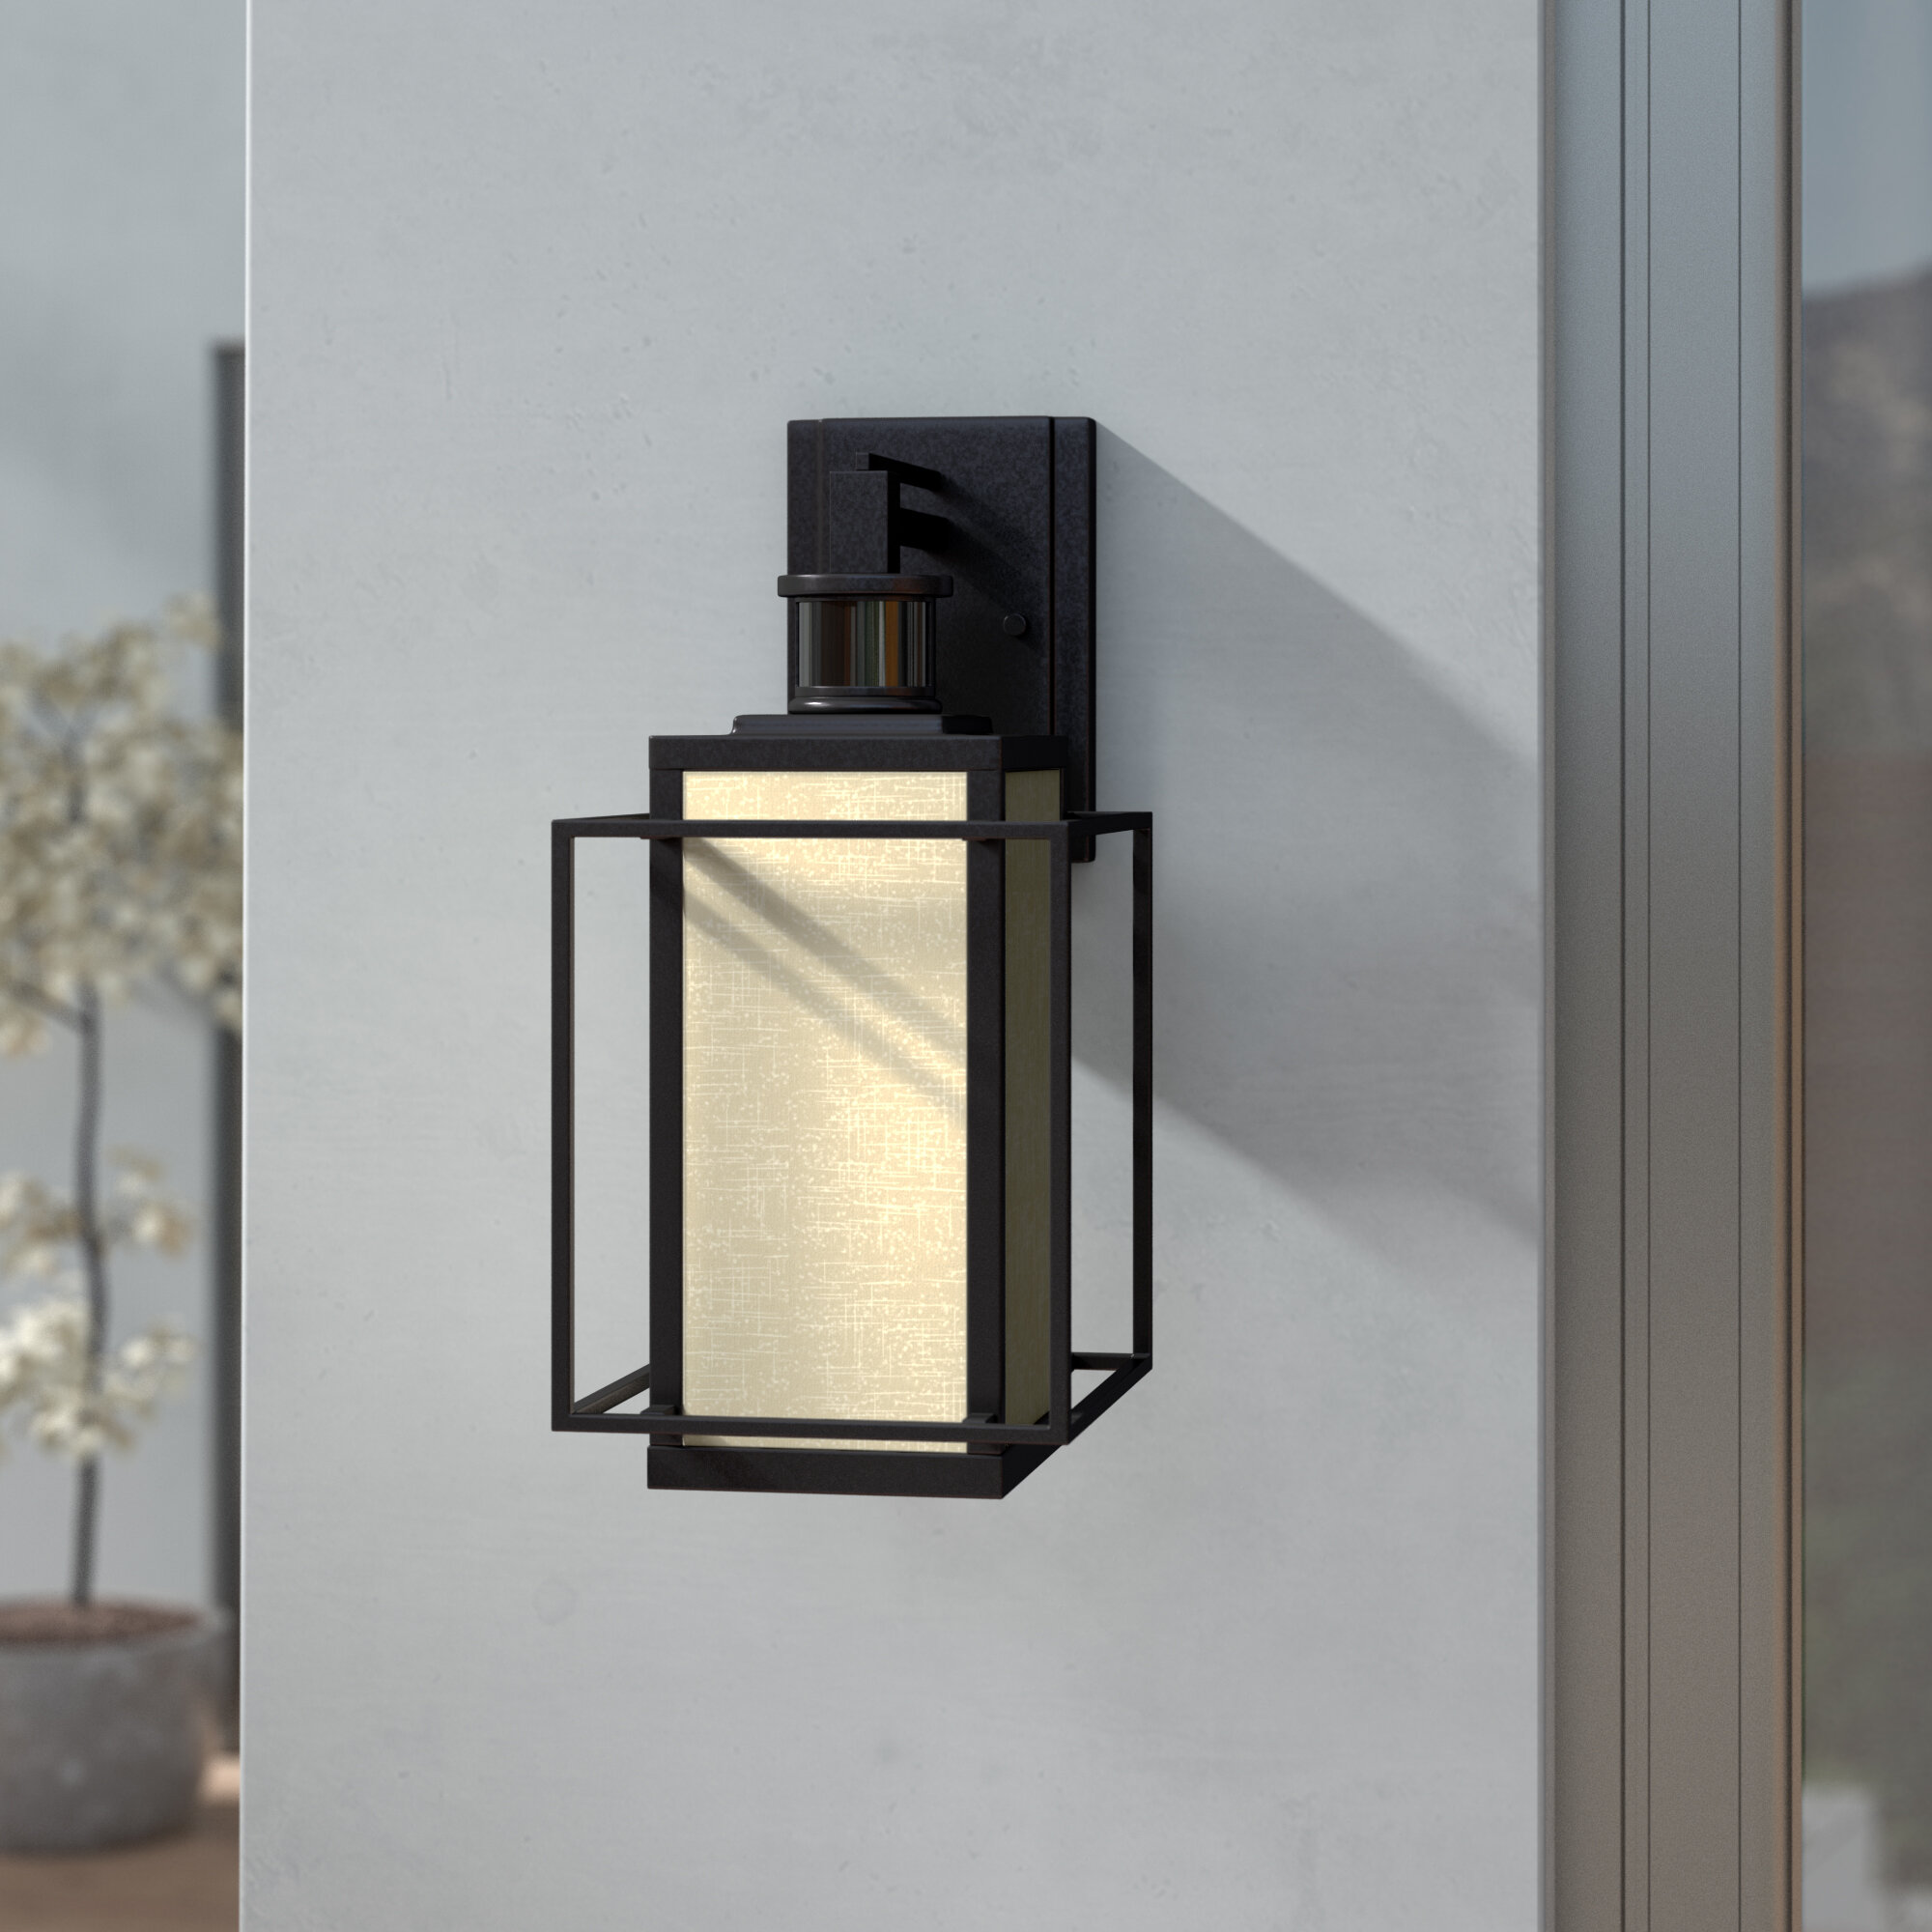 Brayden Studio Guinn Dualux Outdoor Wall Lantern With Motion Sensor Reviews Wayfair Ca